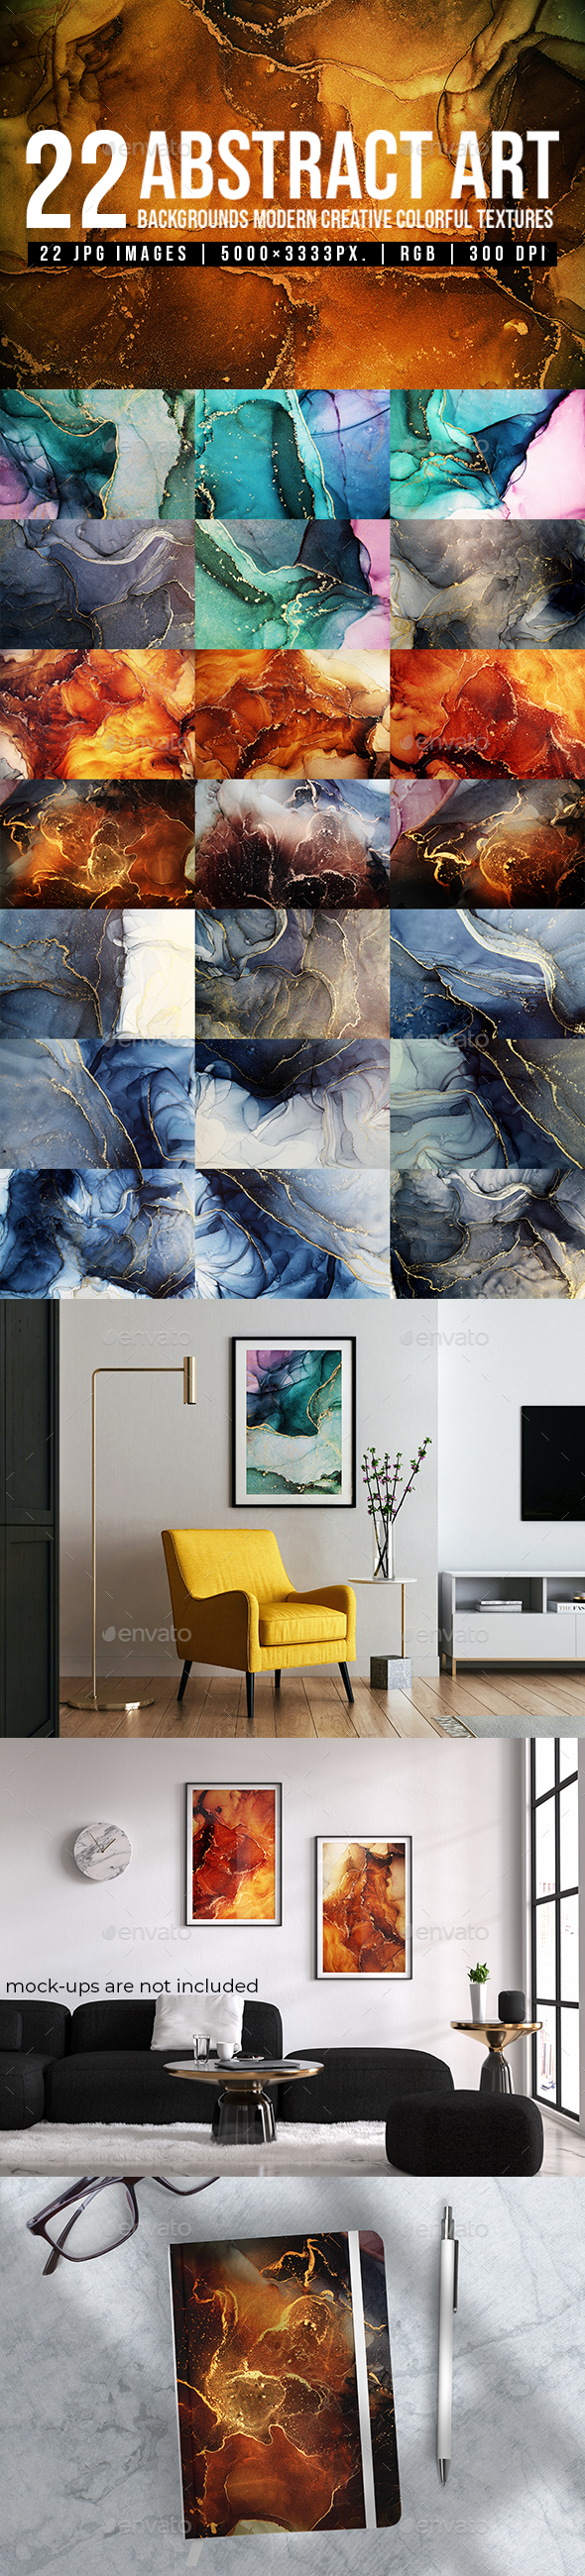 Abstract Art Backgrounds Modern Creative Colorful Textures